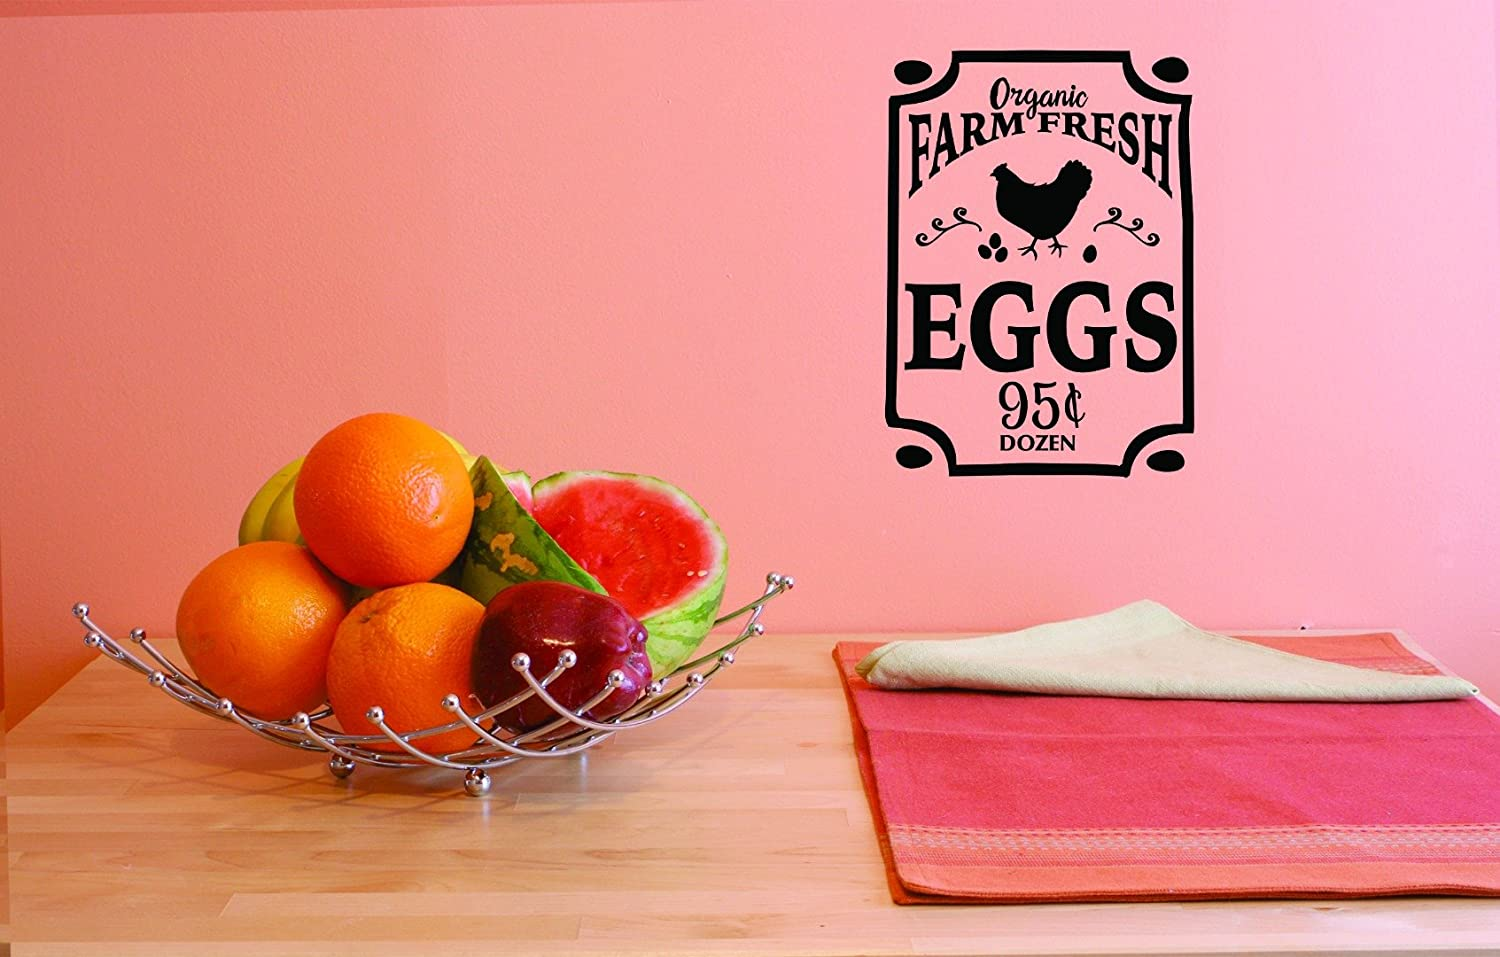 Design with Vinyl JER 1755 3 3 Hot New Decals Organic Farm Fresh Eggs 95 Cents Dozen Wall Art Size 20 inches x 40 inches Color 20 x 40 Black